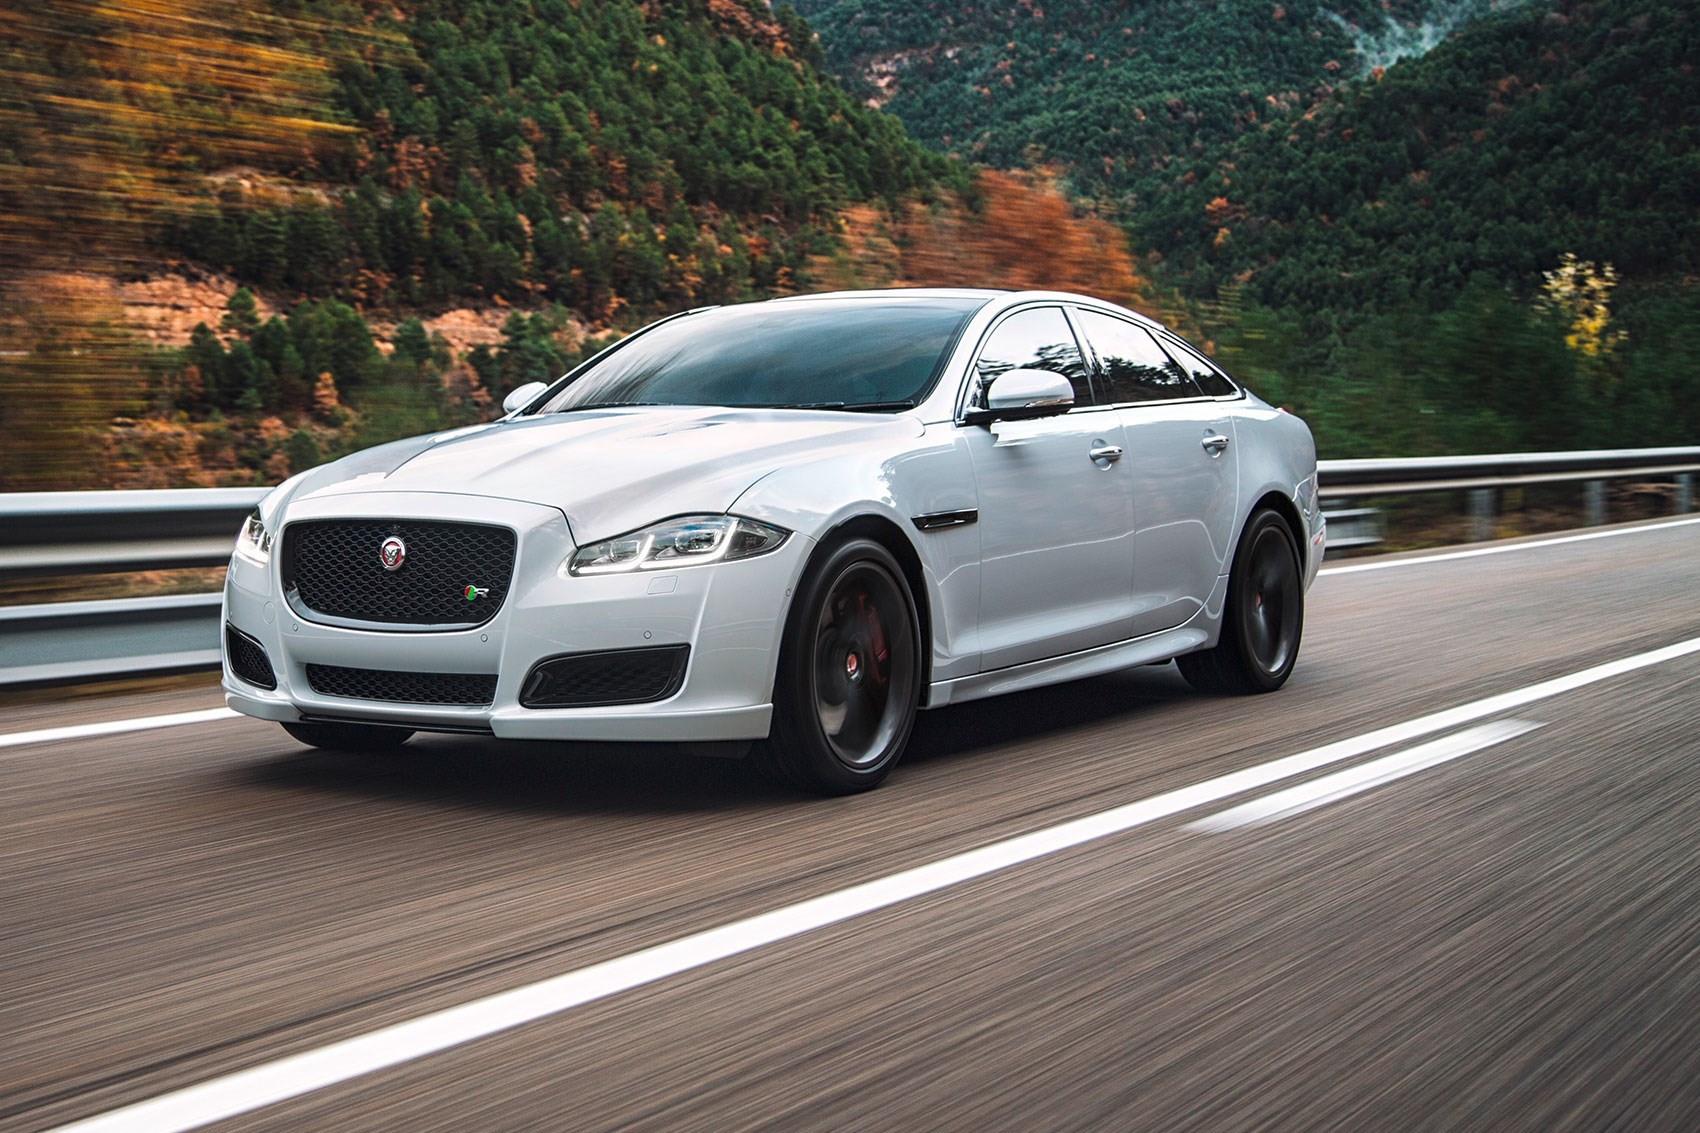 The £100k Jag: 2016 Jaguar XJ goes seriously premium | CAR ... on